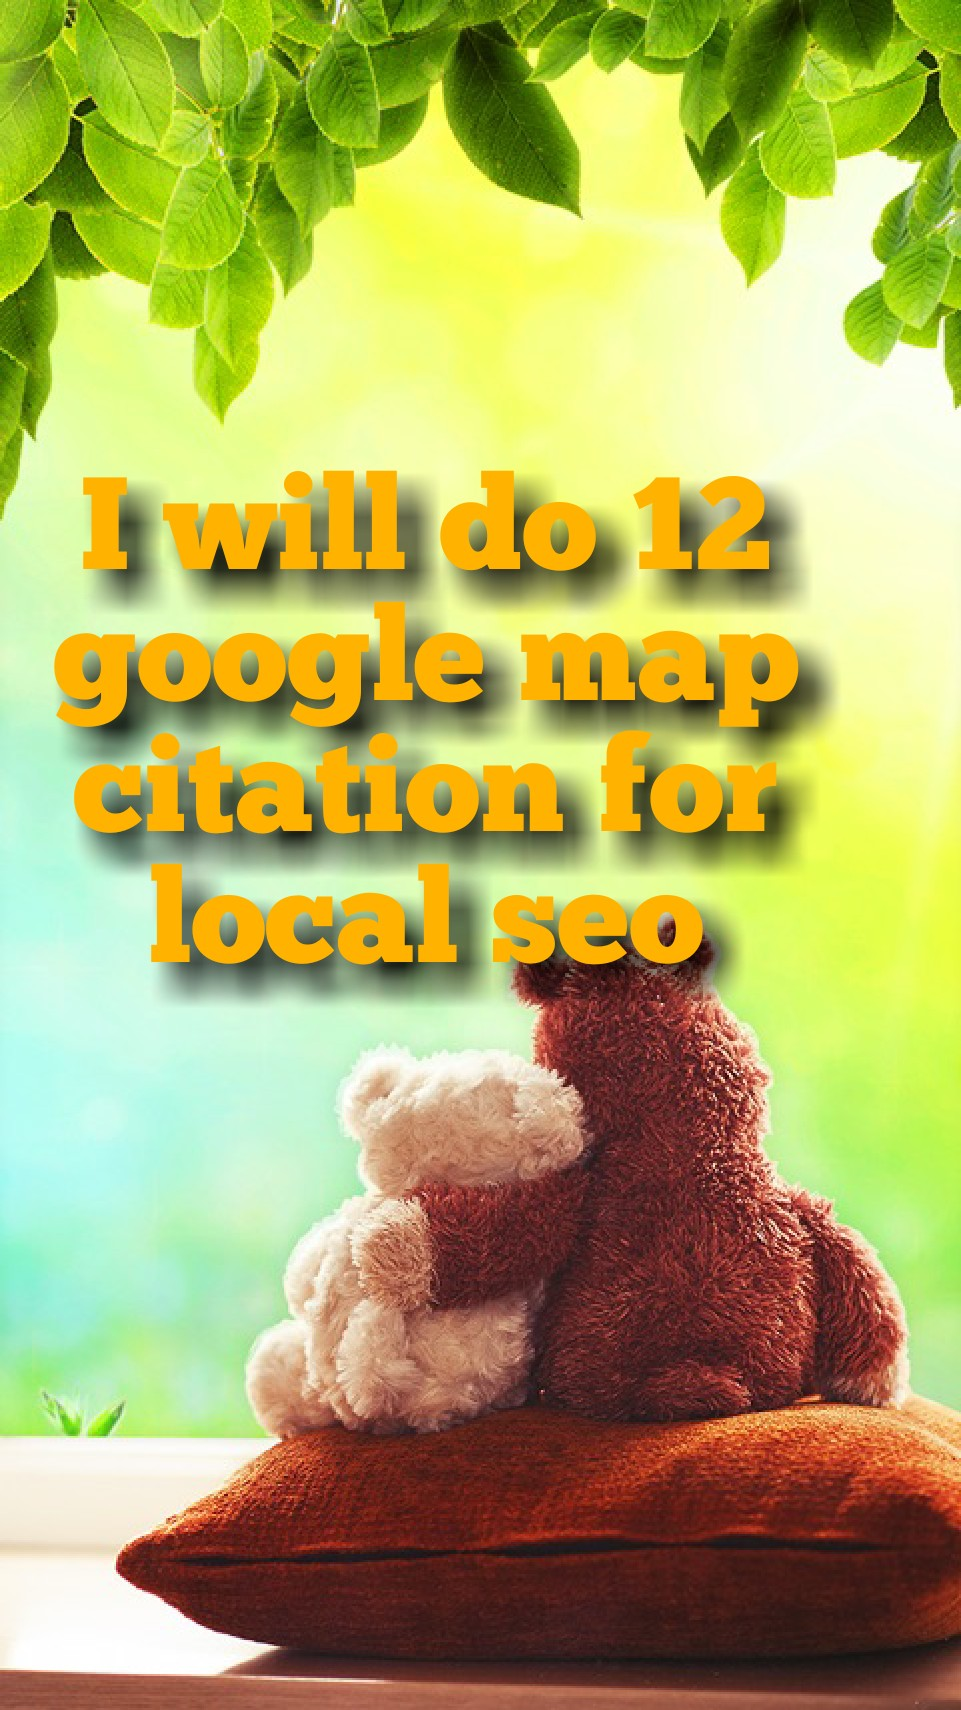 I will do 12 google map citation for local seo